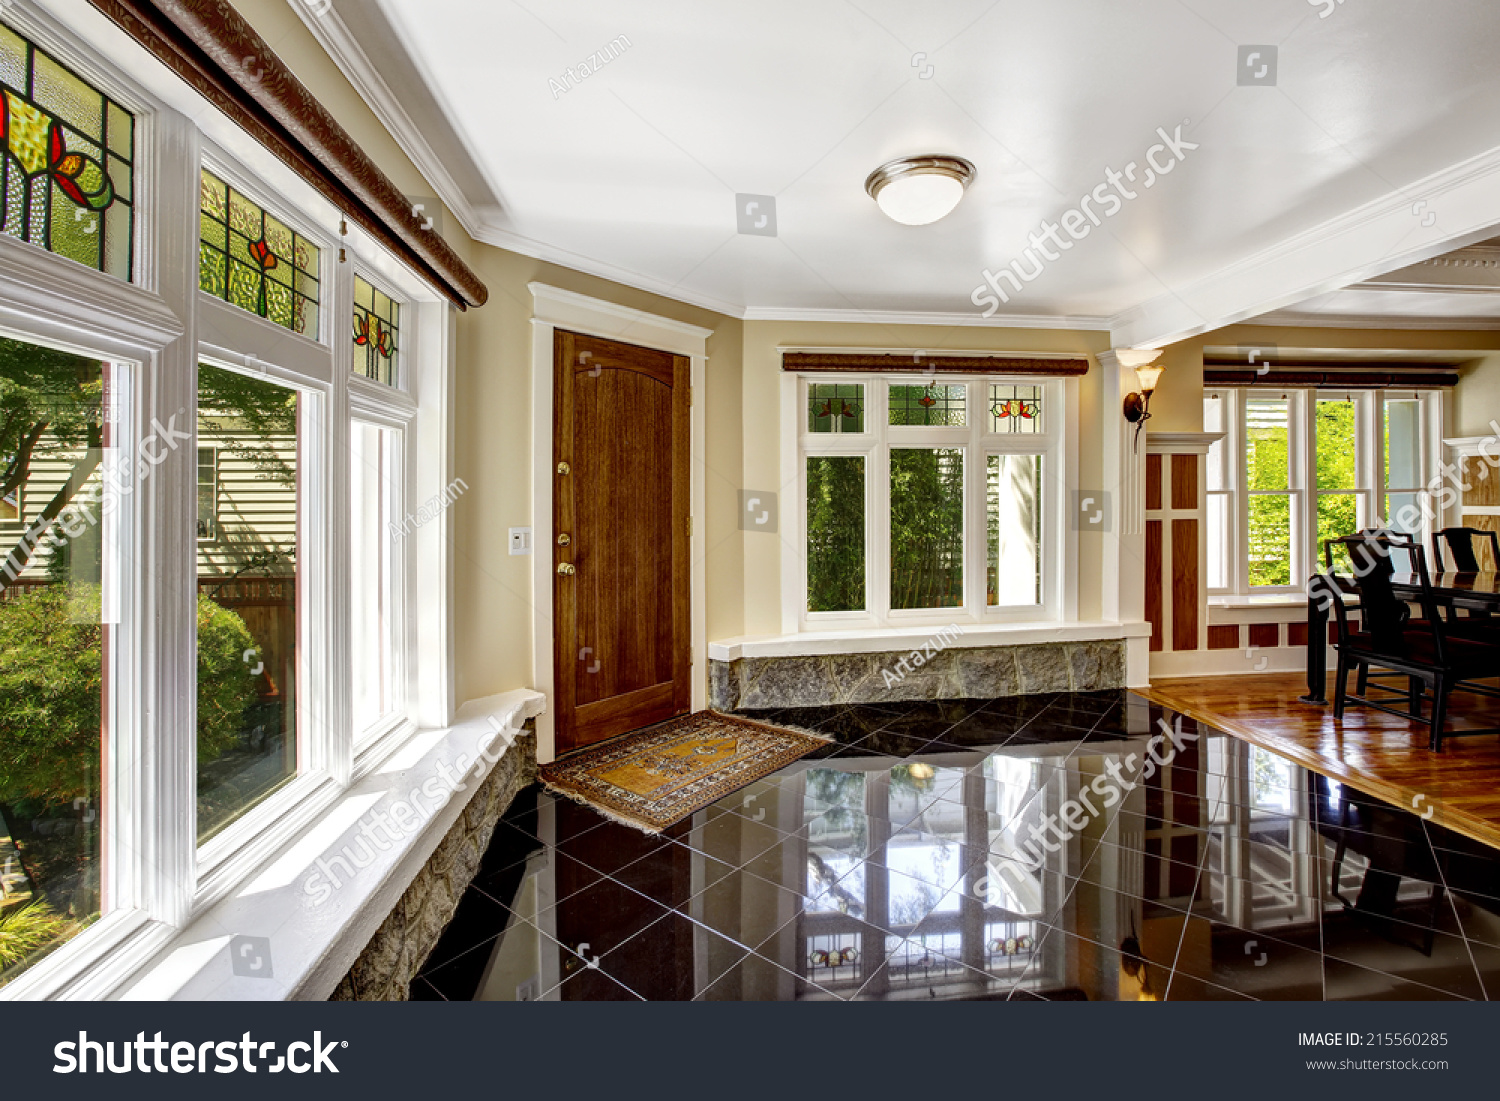 Luxury interior foyer black shiny tile stock photo 215560285 foyer with black shiny tile floor large windows with stone windowsill base dailygadgetfo Images